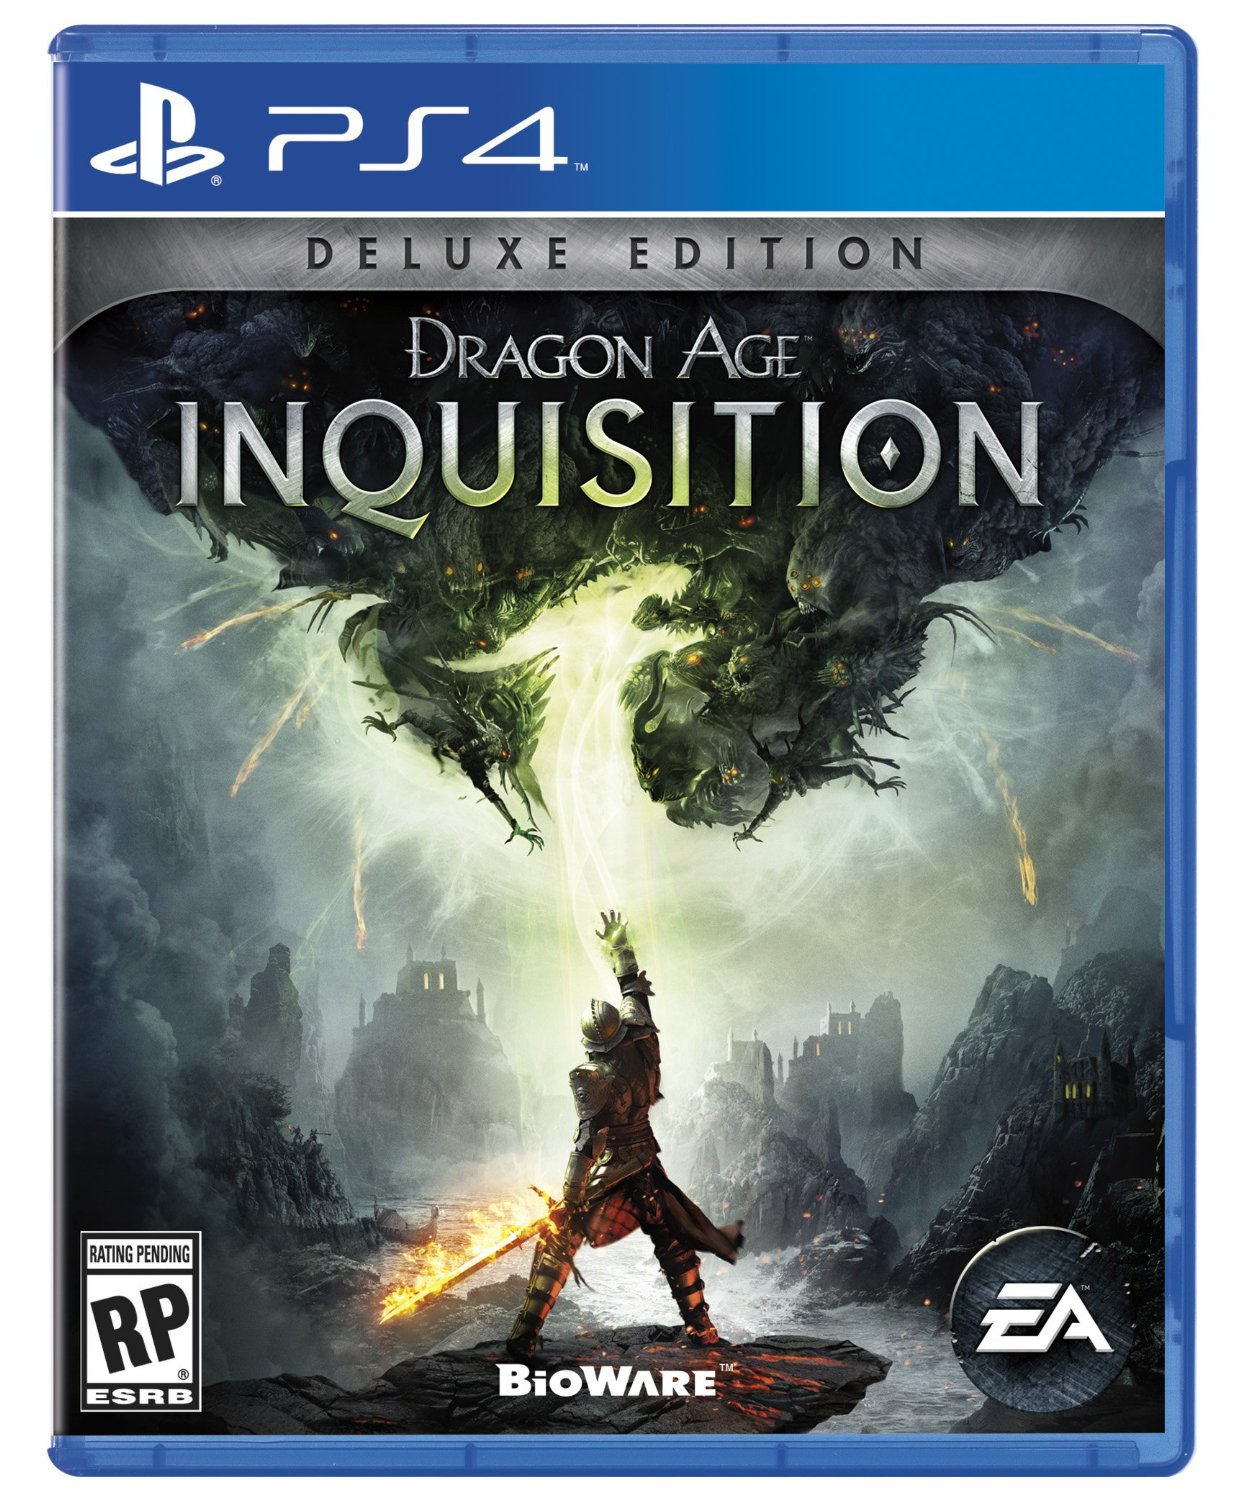 Dragon Age: Inquisition Deluxe Edition (PlayStation 4)